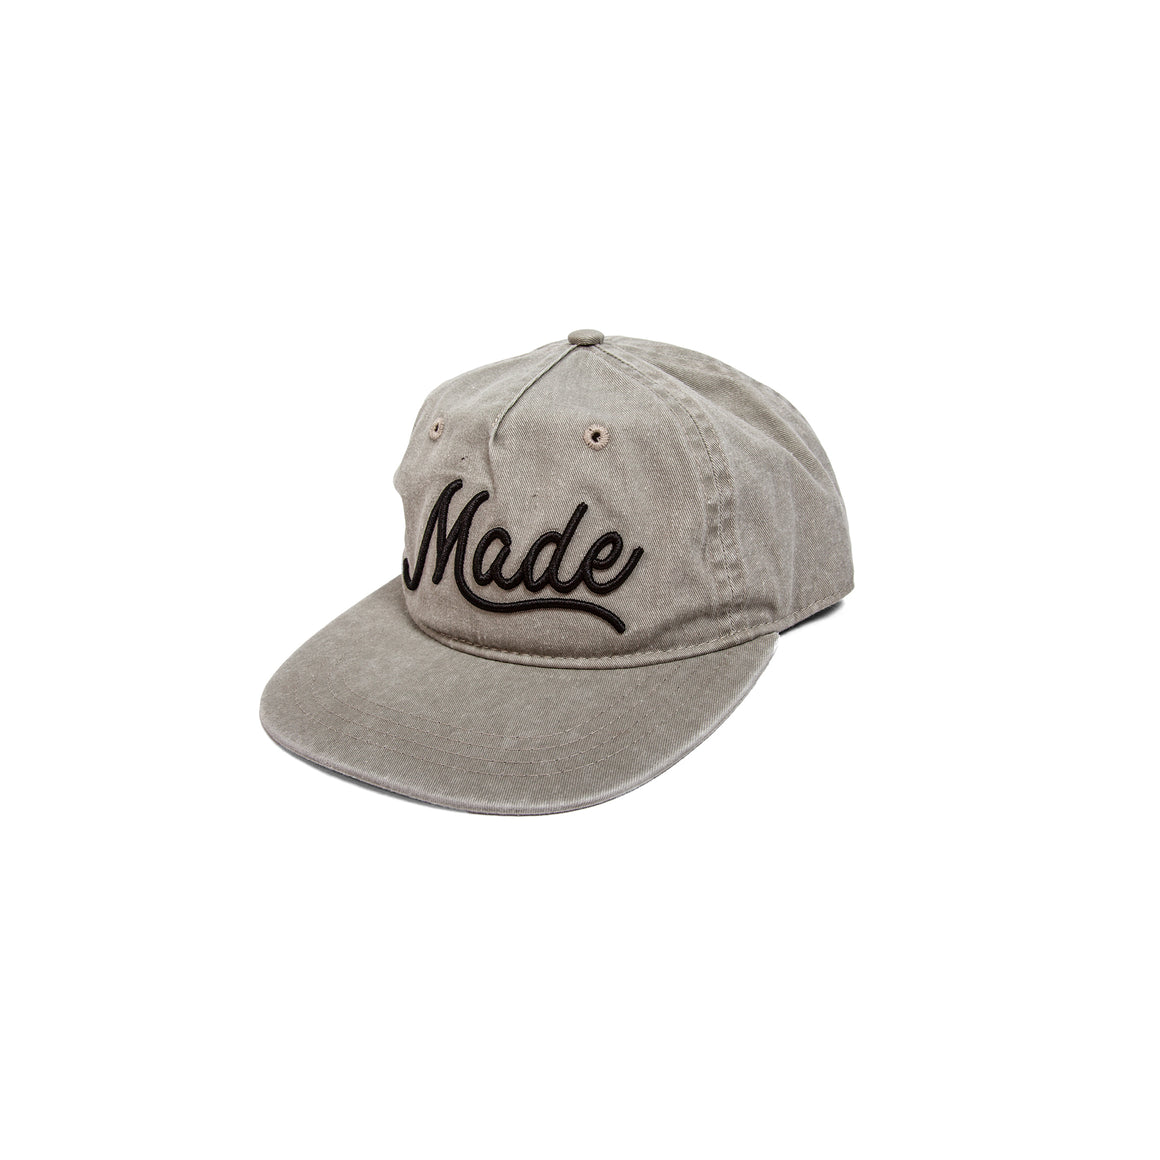 MADE URBAN APPAREL | MADE HAT | OLIVE